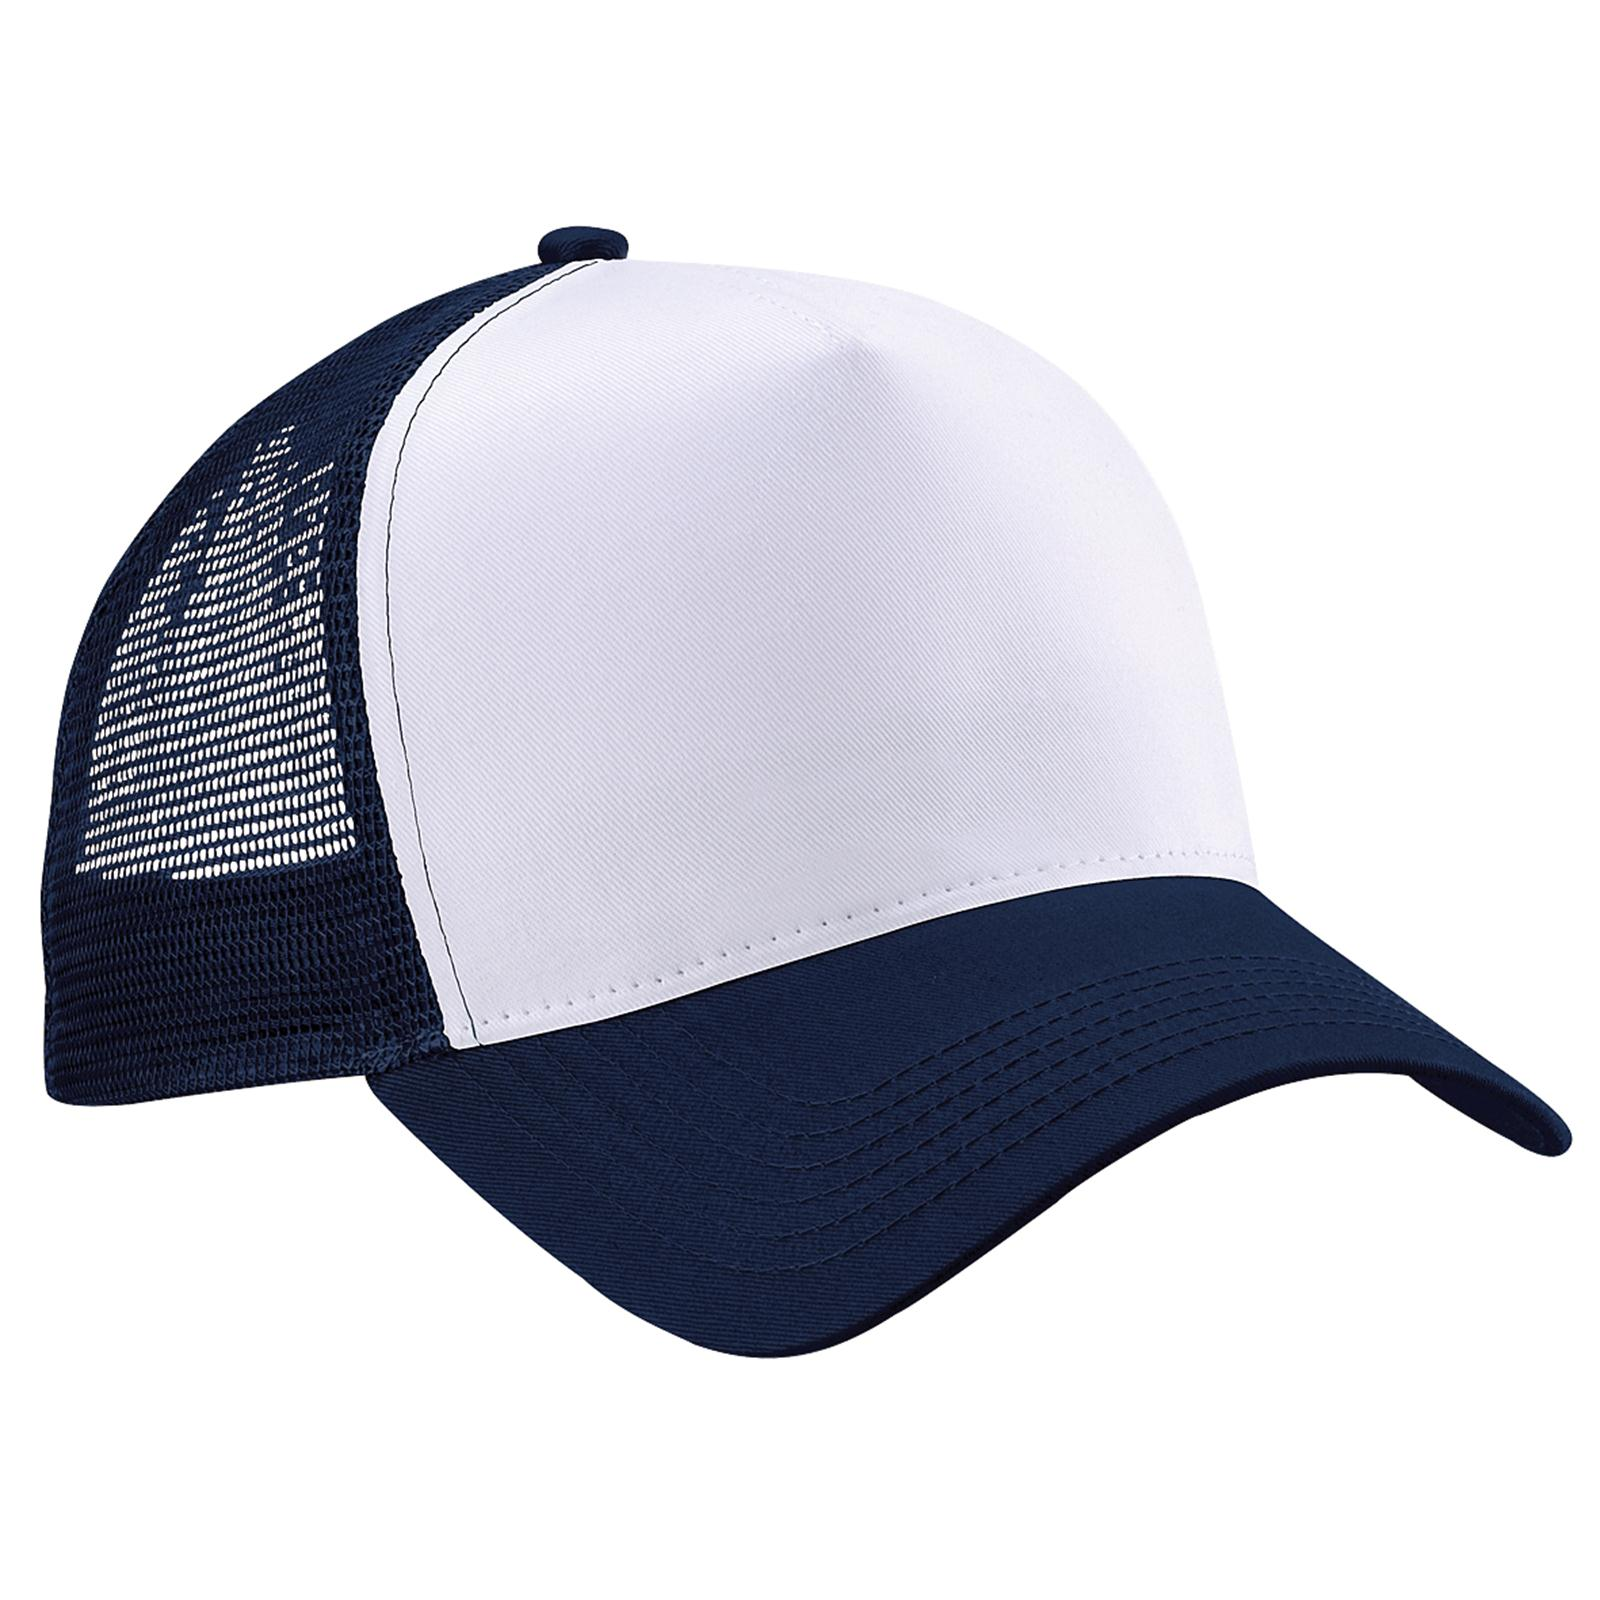 new beechfield half mesh trucker baseball cap hat in 8 colours one size ebay. Black Bedroom Furniture Sets. Home Design Ideas